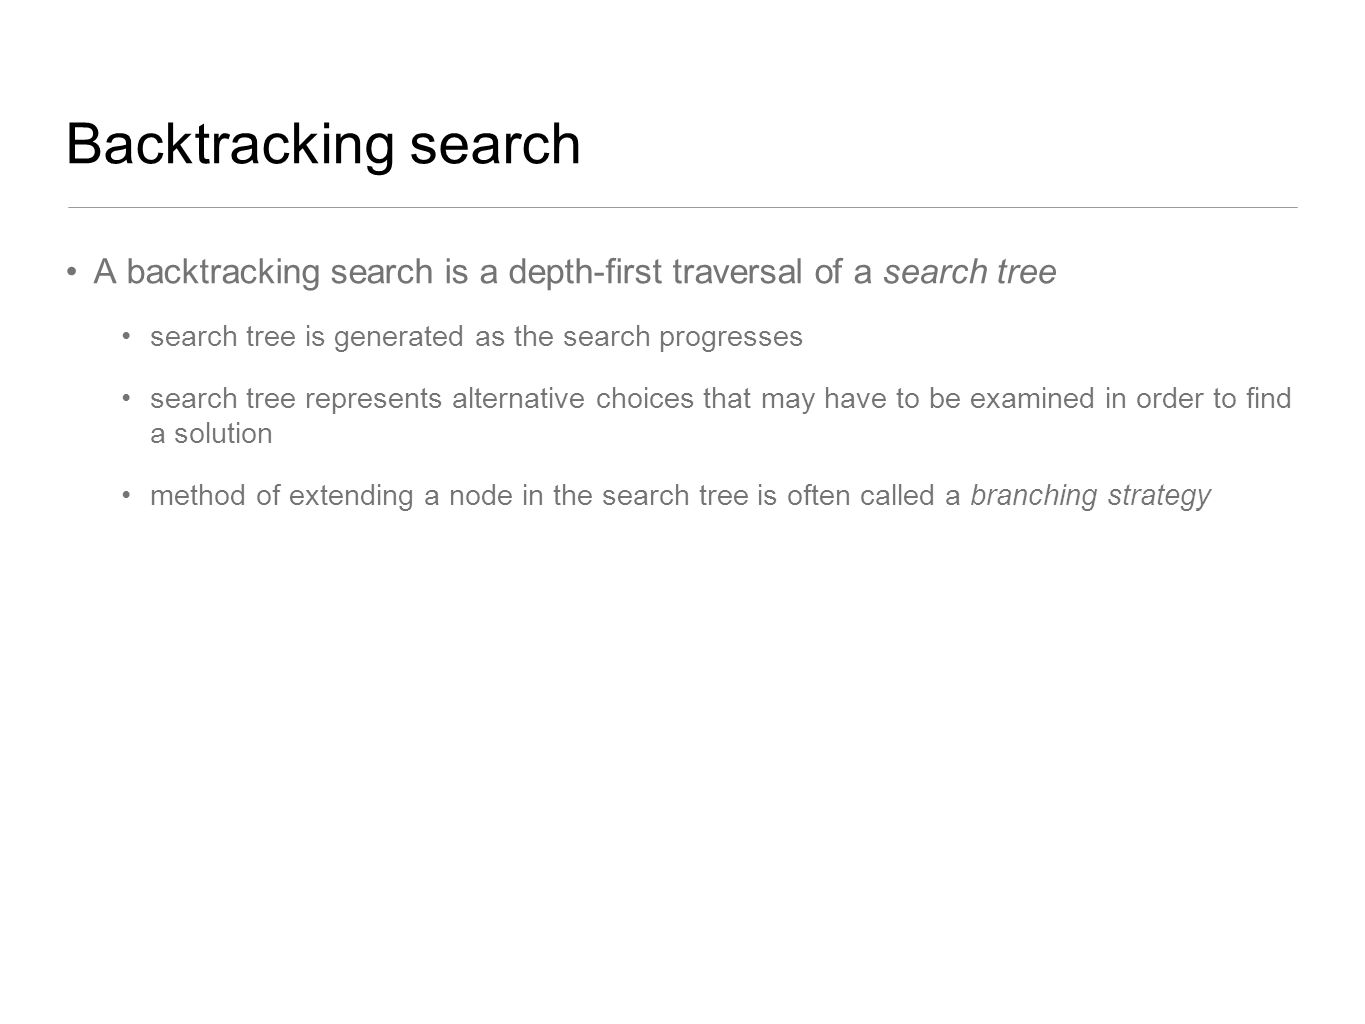 Backtracking search A backtracking search is a depth-first traversal of a search tree search tree is generated as the search progresses search tree re